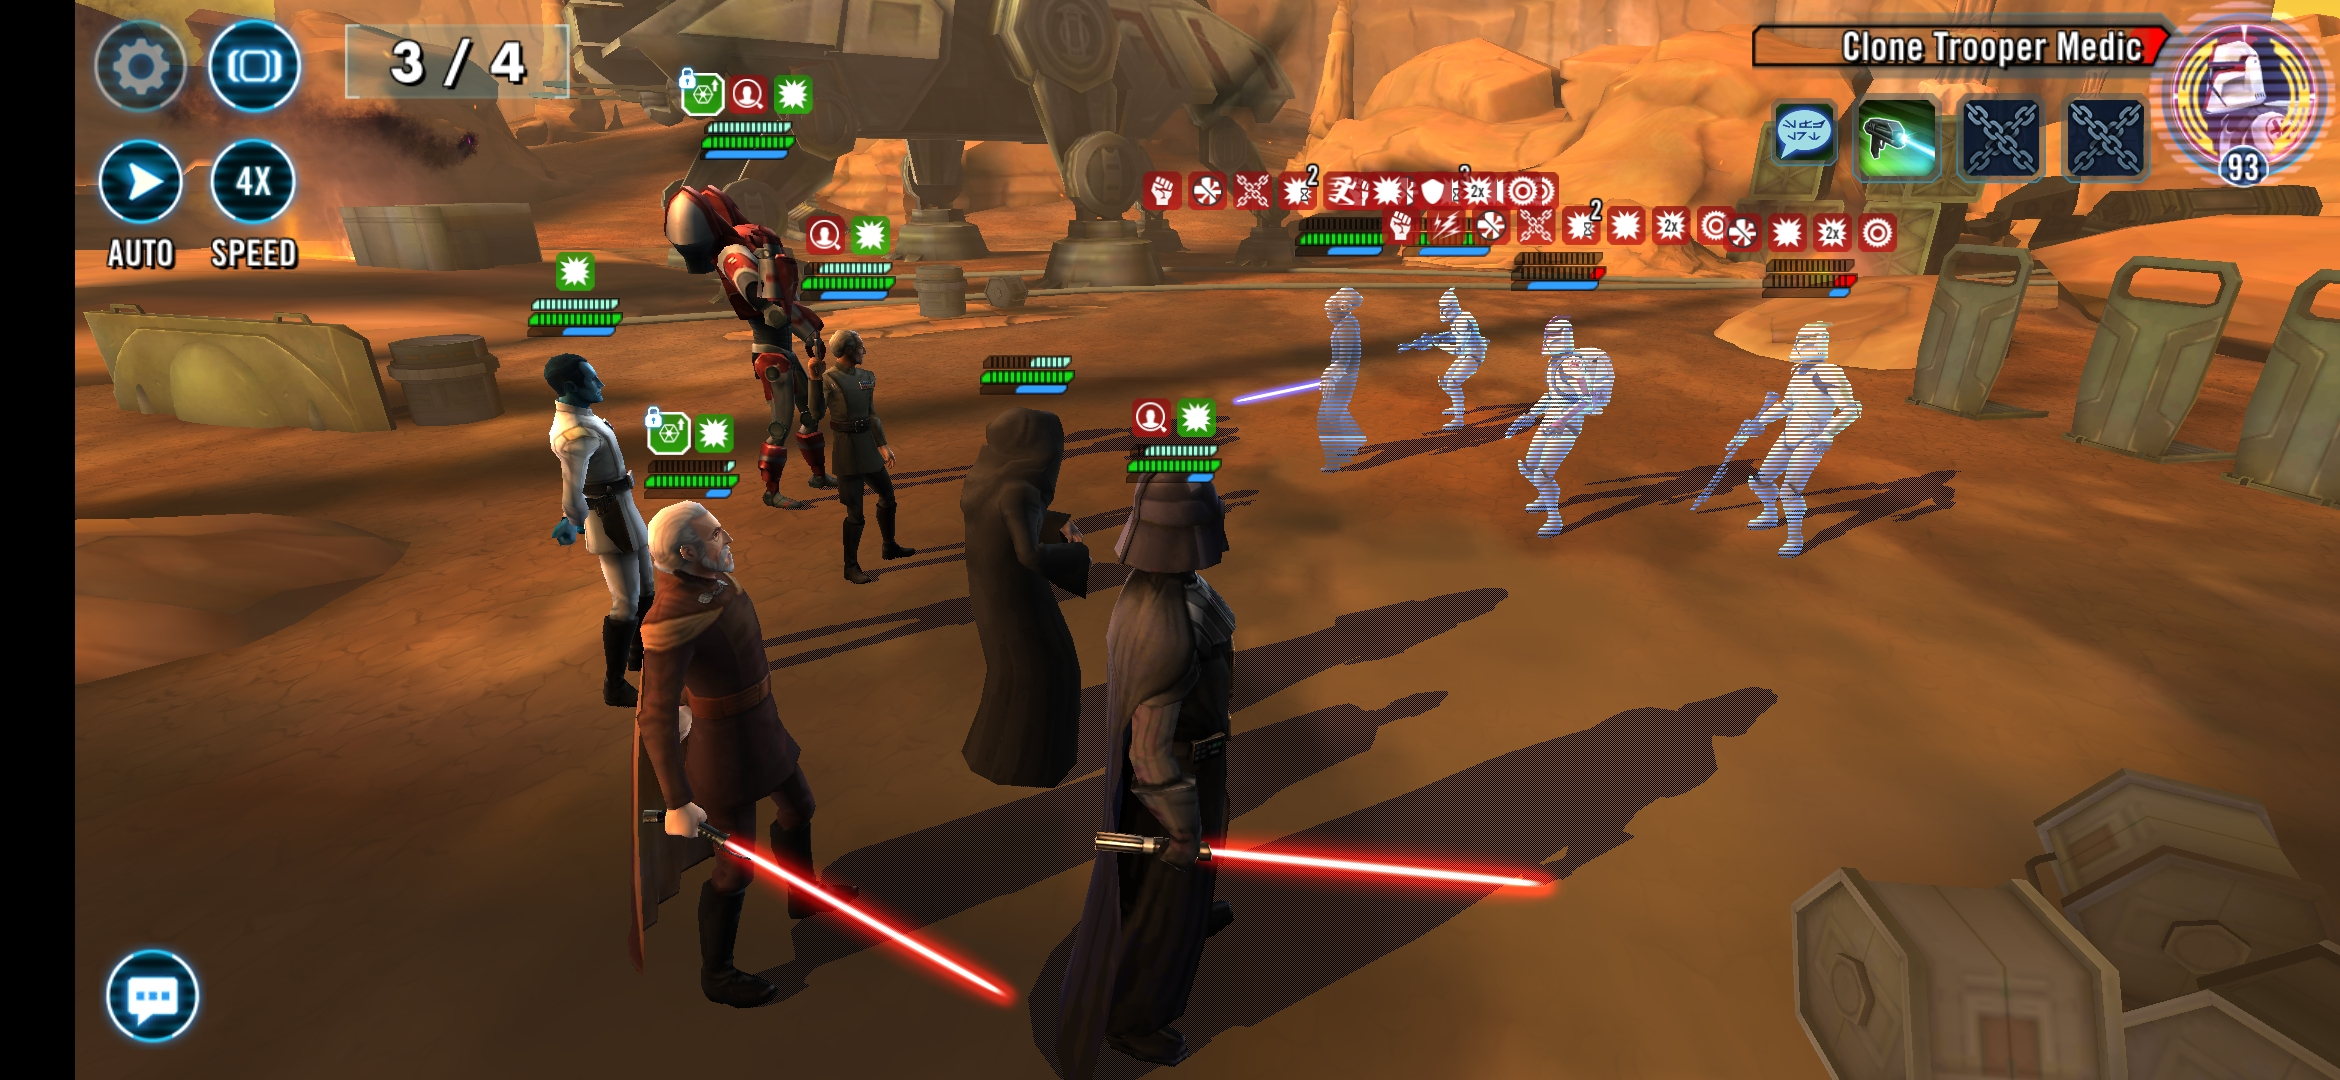 Screenshot_20190829_213614_com.ea.game.starwarscapital_row.jpg